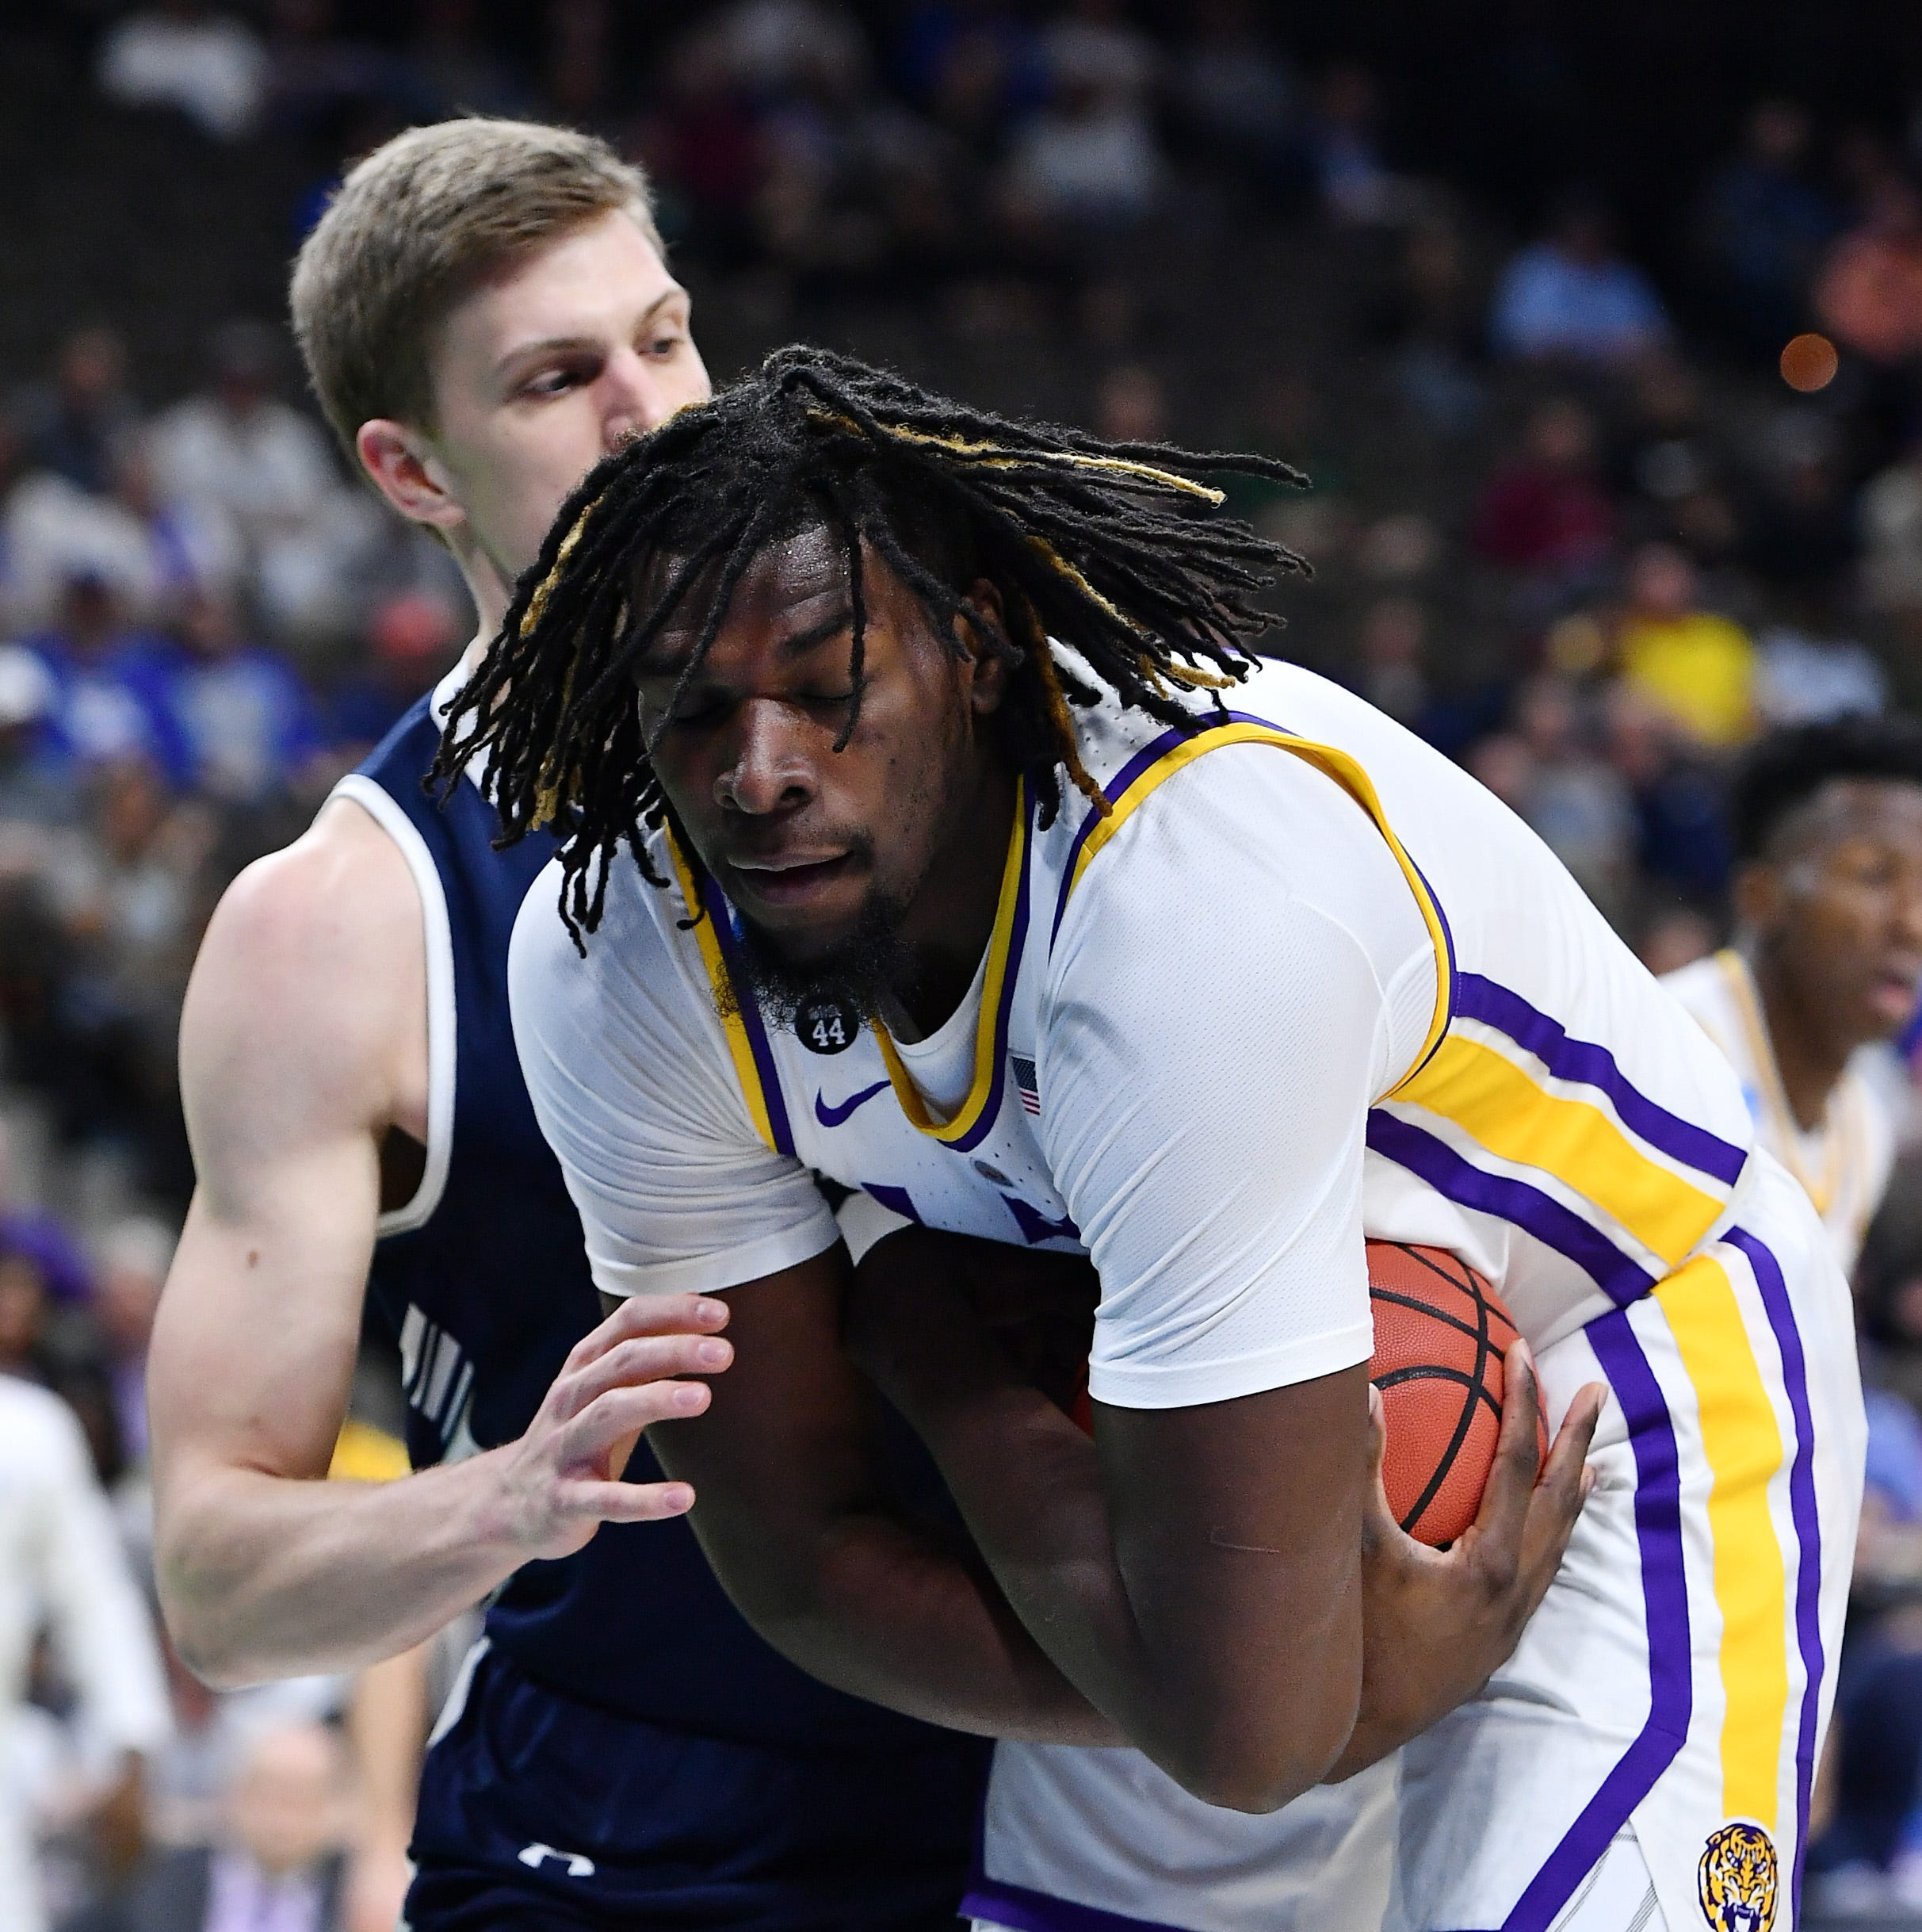 LSU survives late rash of 3-pointers to beat Yale, 79-74; Tigers to play Maryland Saturday